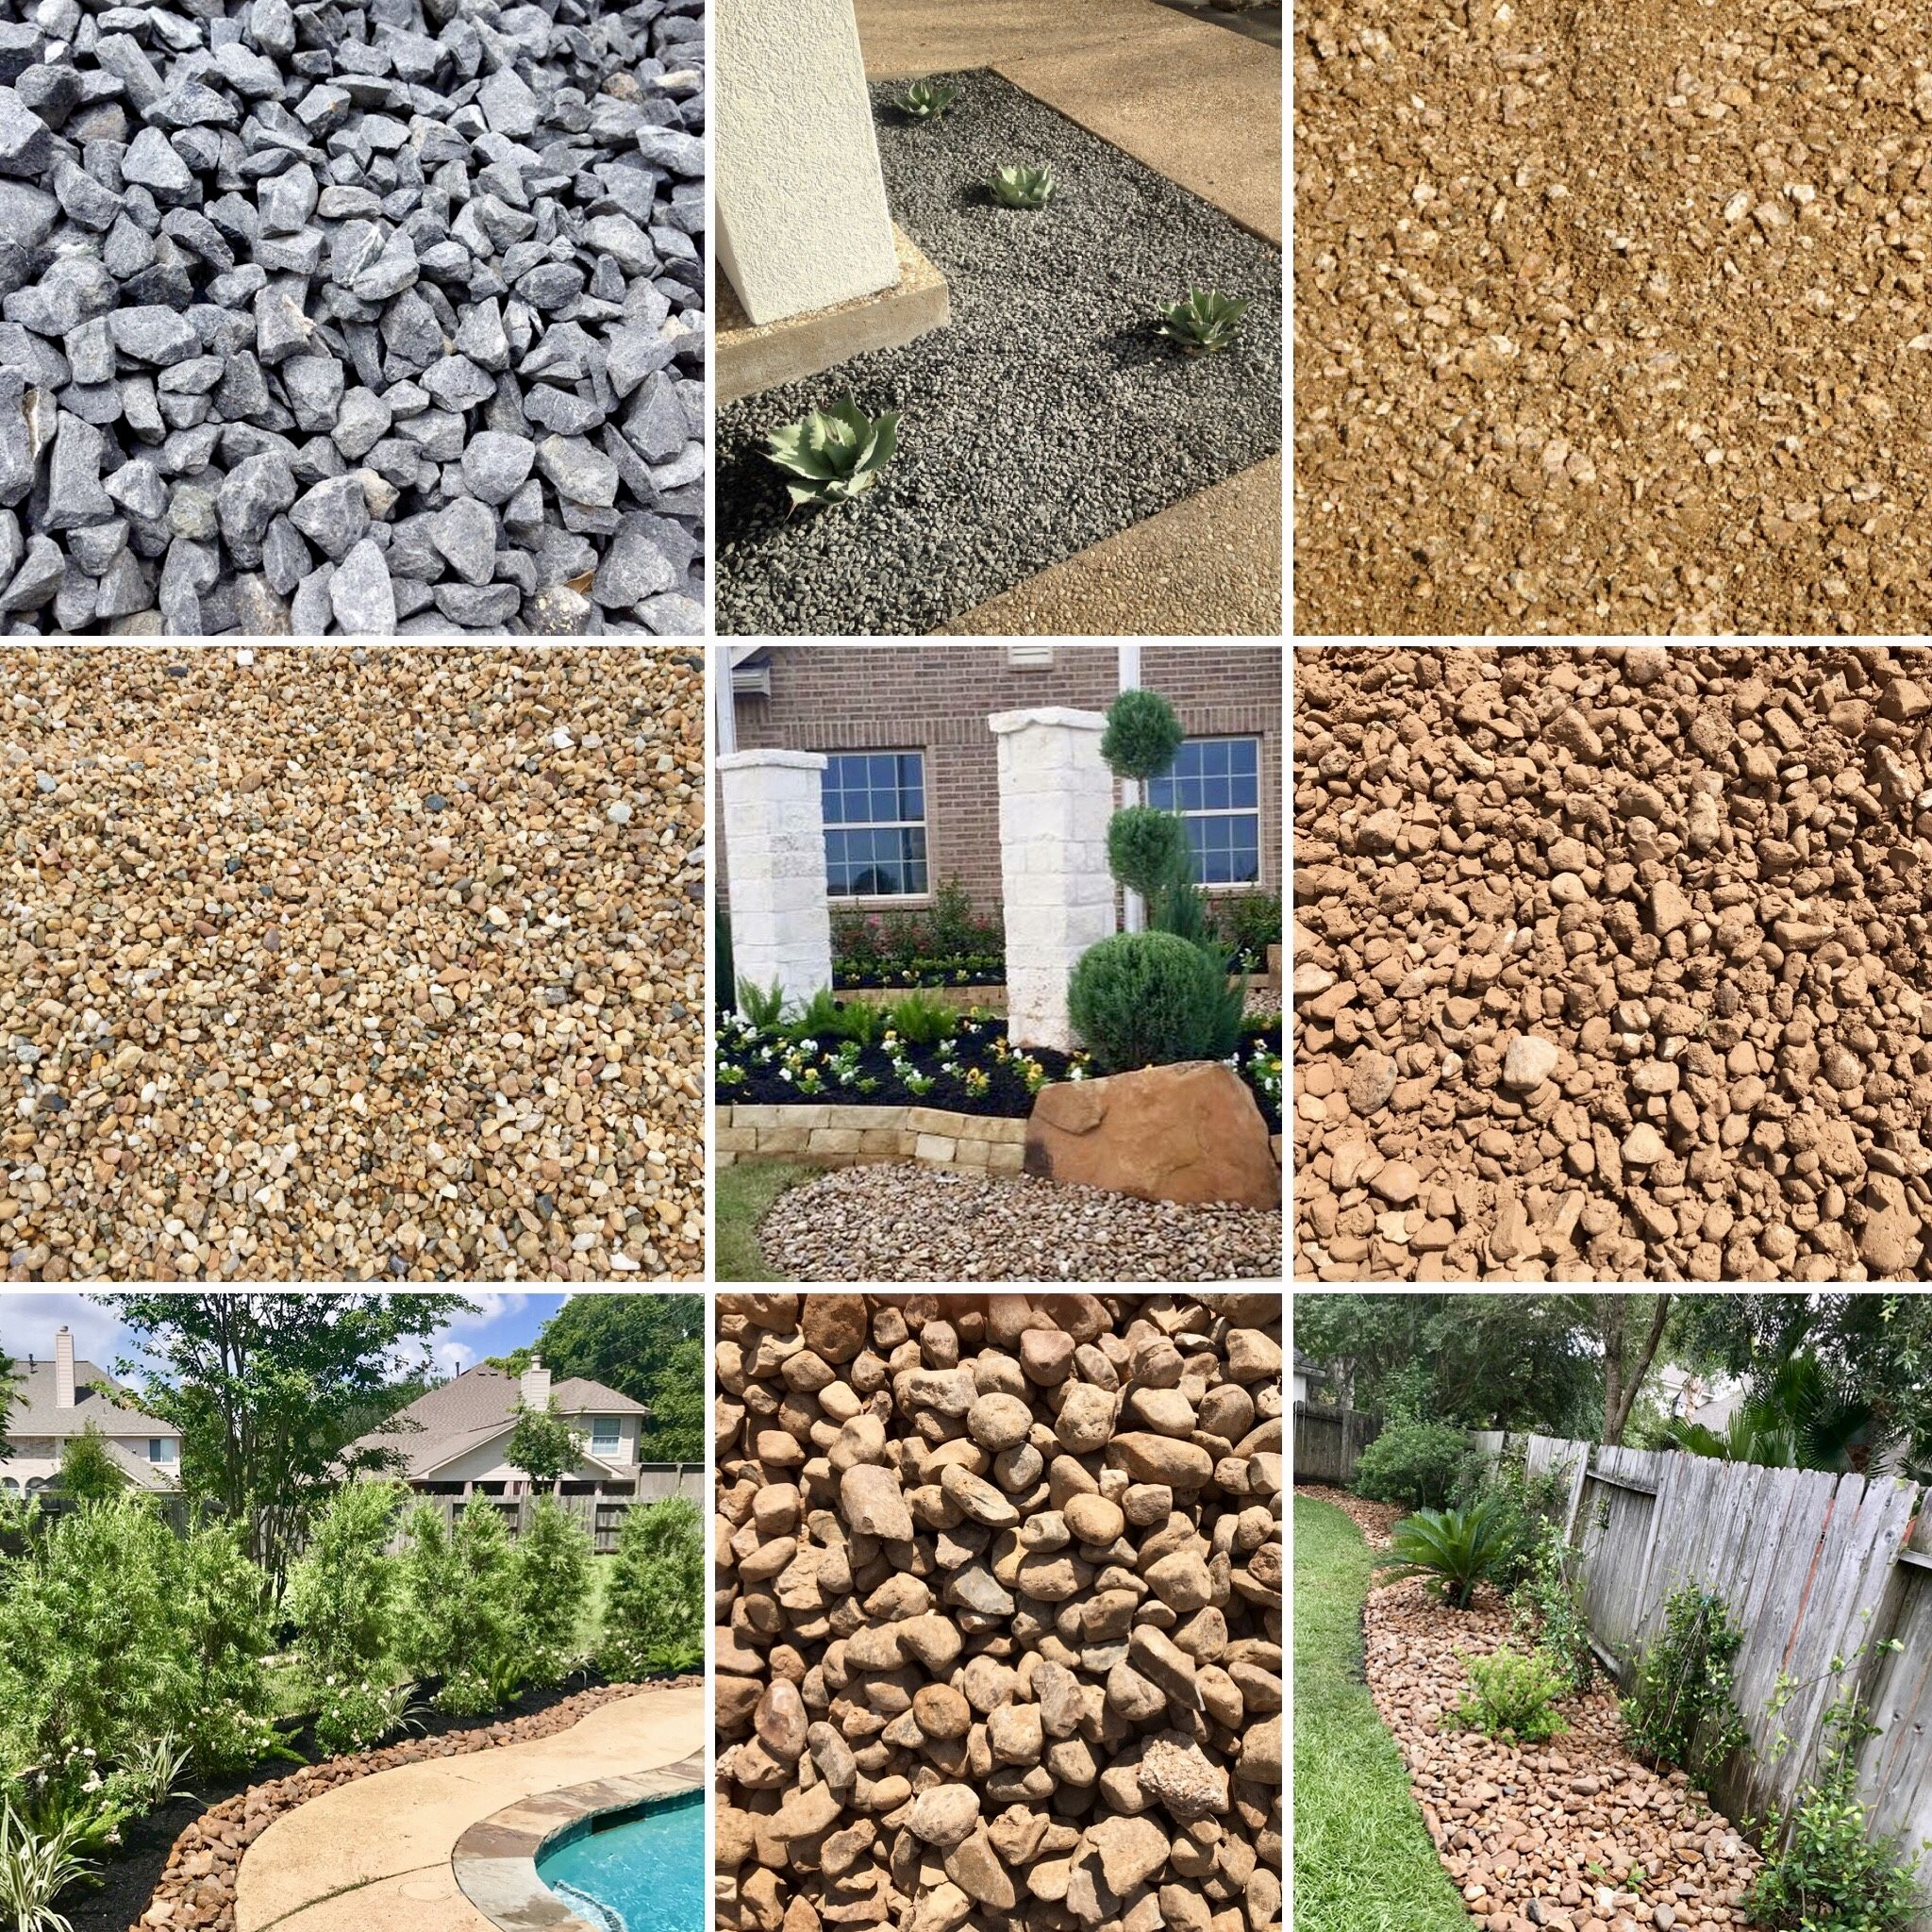 Landscaping Rock Gravel Yard Supplier Houston Tx 77099 Landscaping With Rocks Easy Backyard Backyard Landscaping